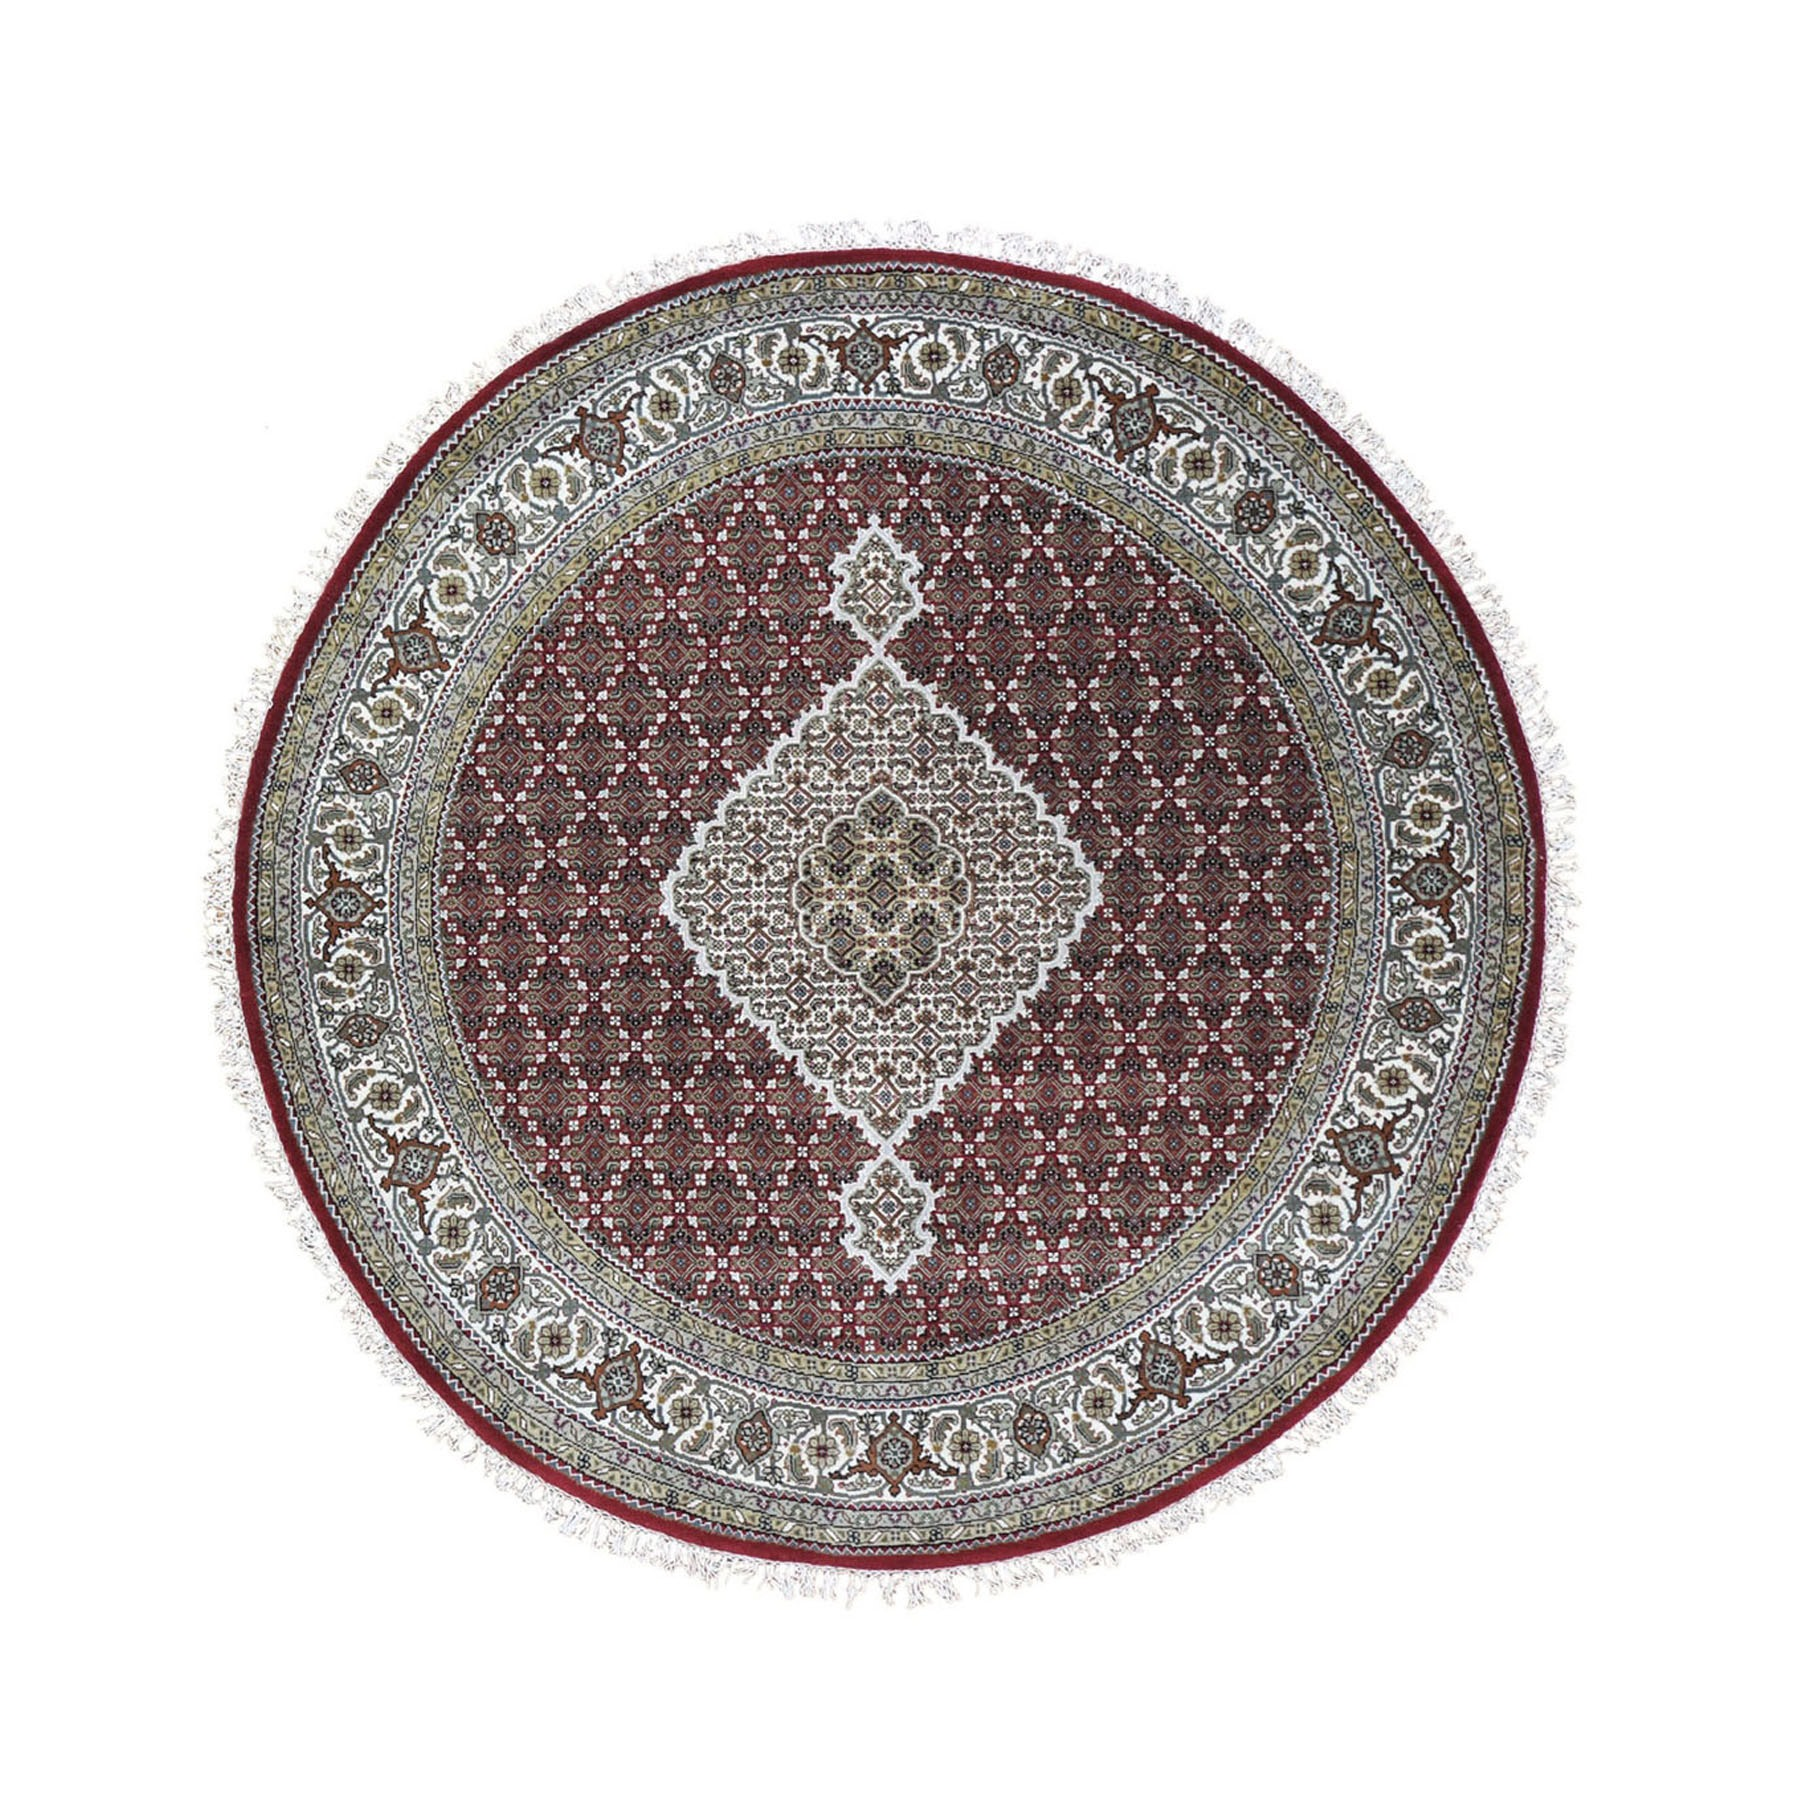 Pirniakan Collection Hand Knotted Red Rug No: 199022